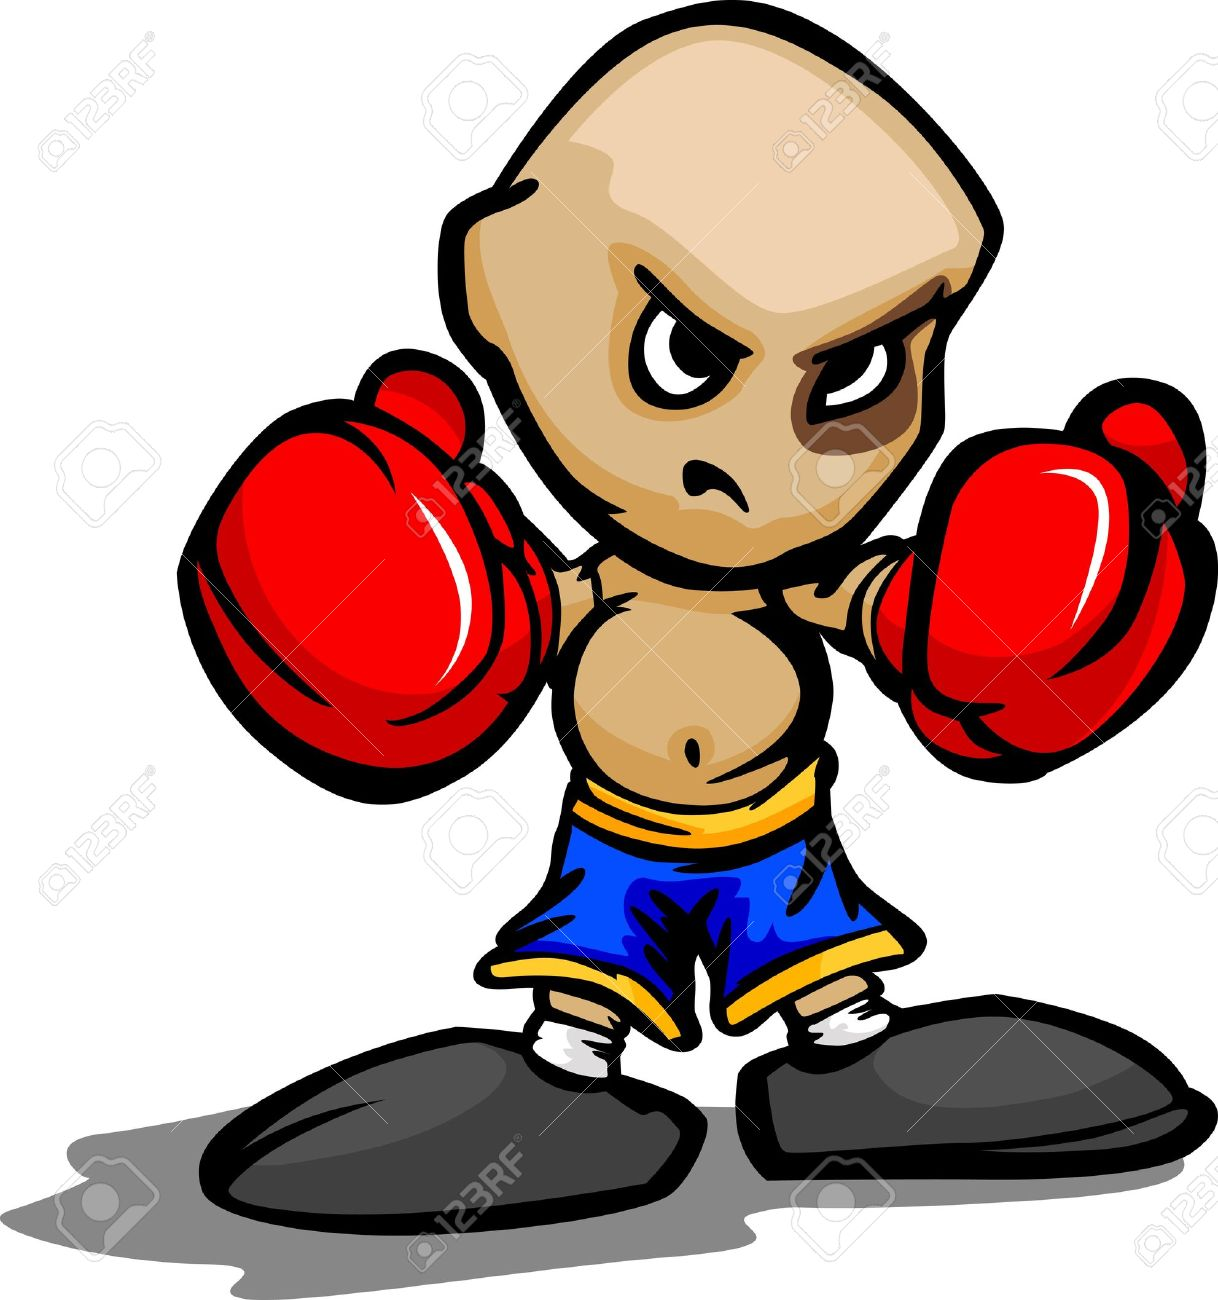 Boxing clipart animated.  collection of kid